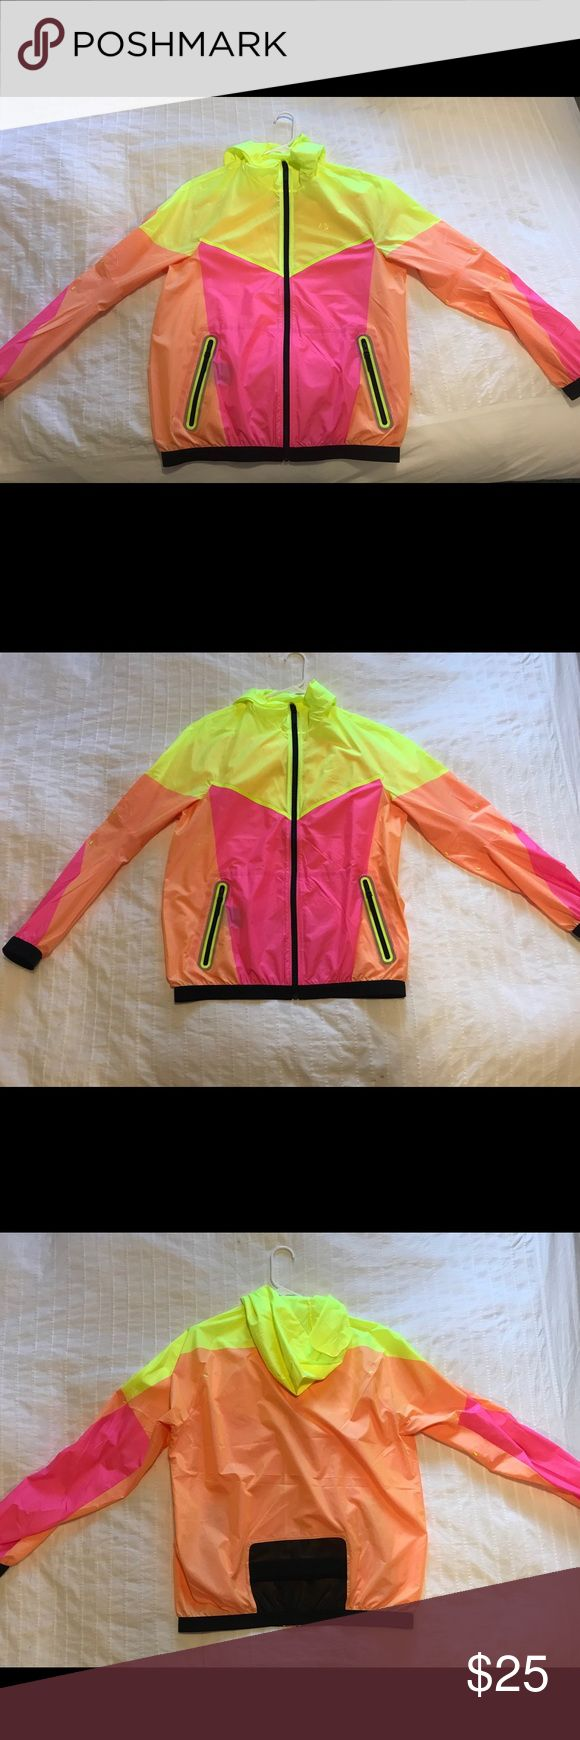 Nike Lightweight Jacket Neon Nike rain jacket, very lightweight. Never been worn, but I took the tags off of it when I first got it. There is a subtle Nike logo on the front. Excellent condition, size medium. Nike Jackets & Coats Trench Coats